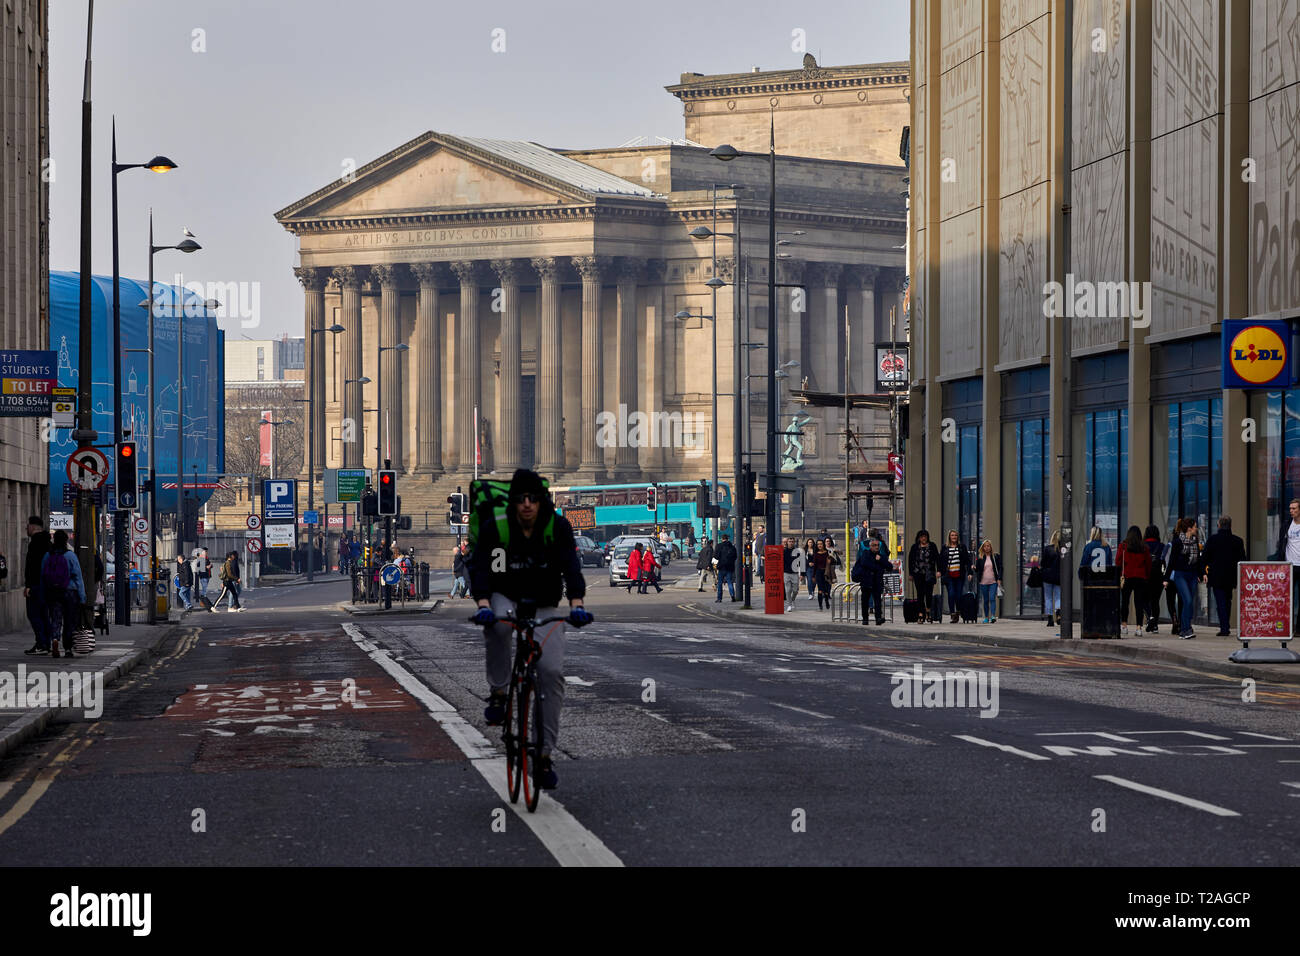 St George's Hall lungo di Liverpool Lime Street, Liverpool City Centre Immagini Stock